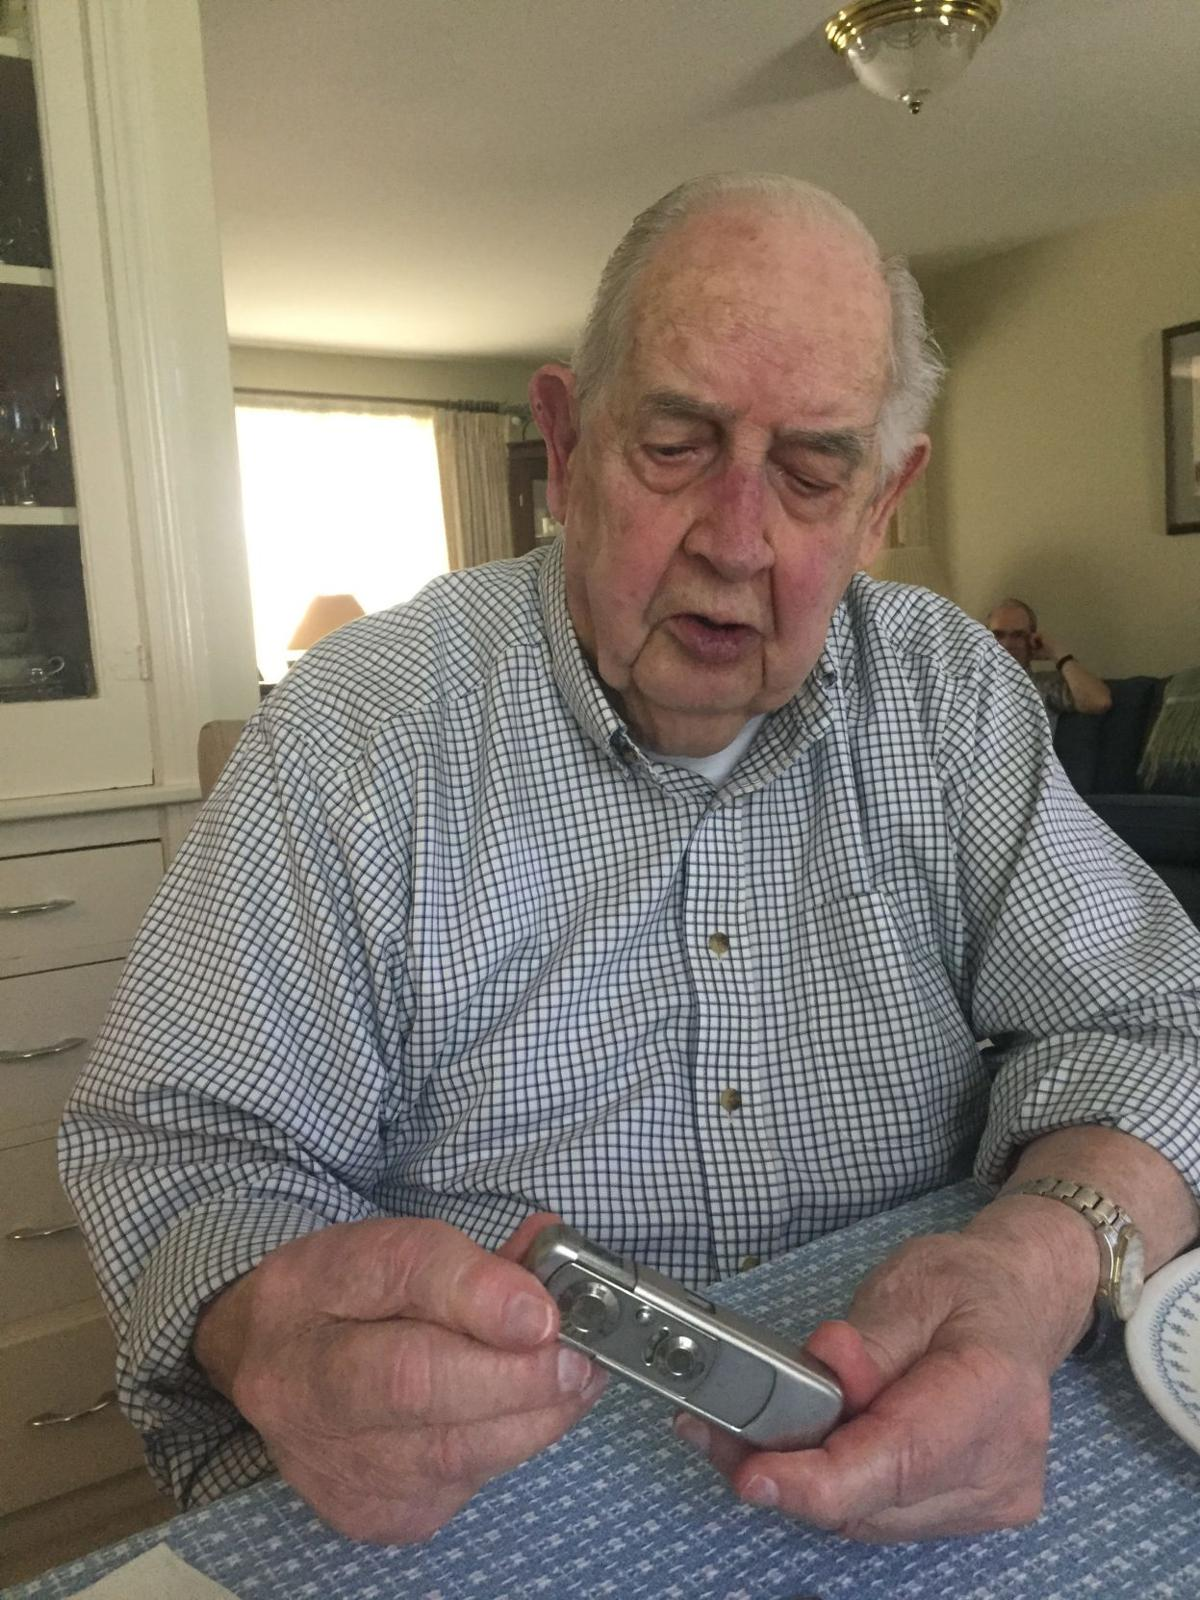 'None of it is forgettable': D-Day veteran shares his story